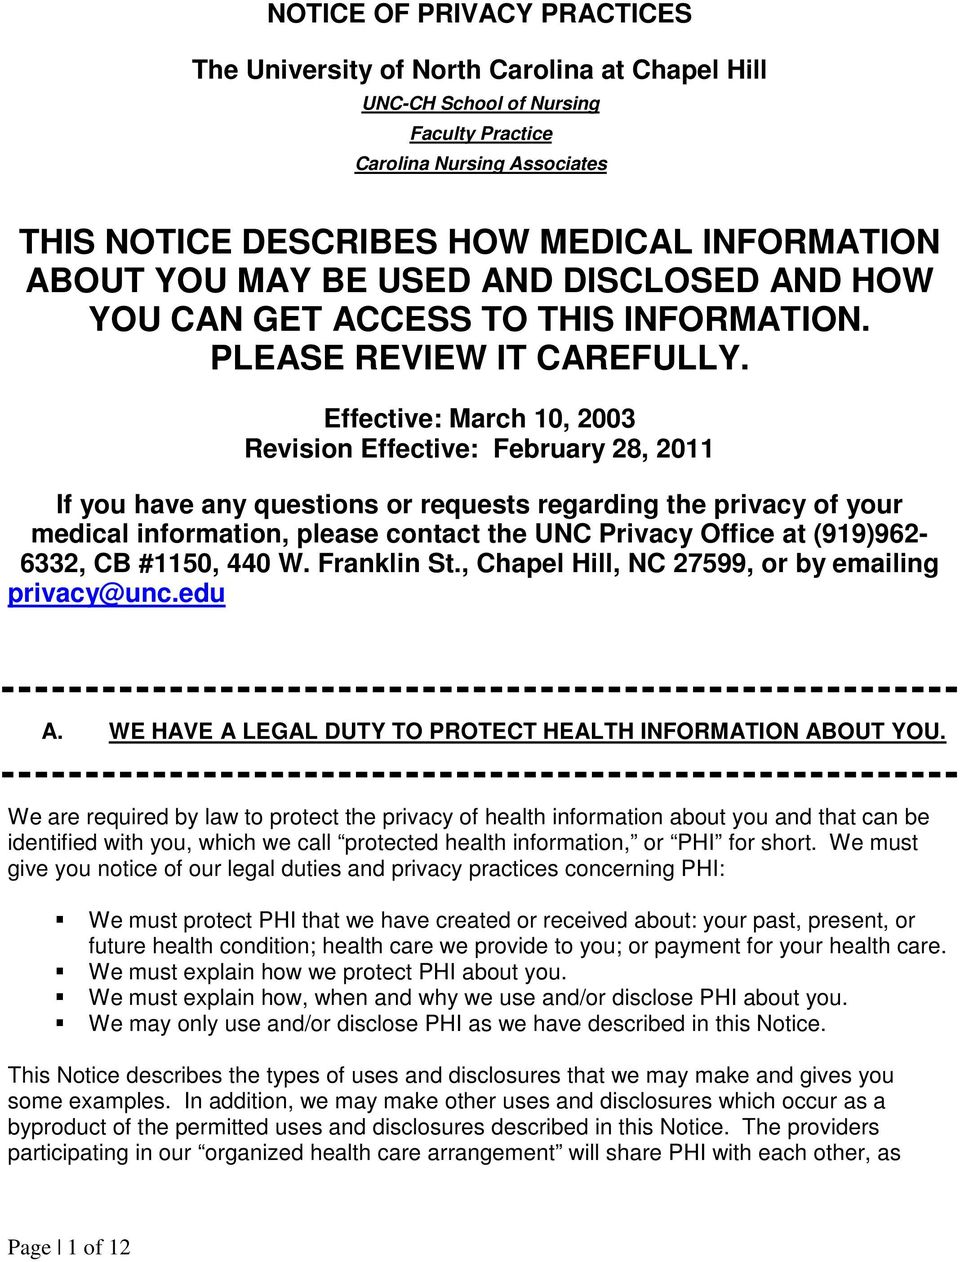 Effective: March 10, 2003 Revision Effective: February 28, 2011 If you have any questions or requests regarding the privacy of your medical information, please contact the UNC Privacy Office at